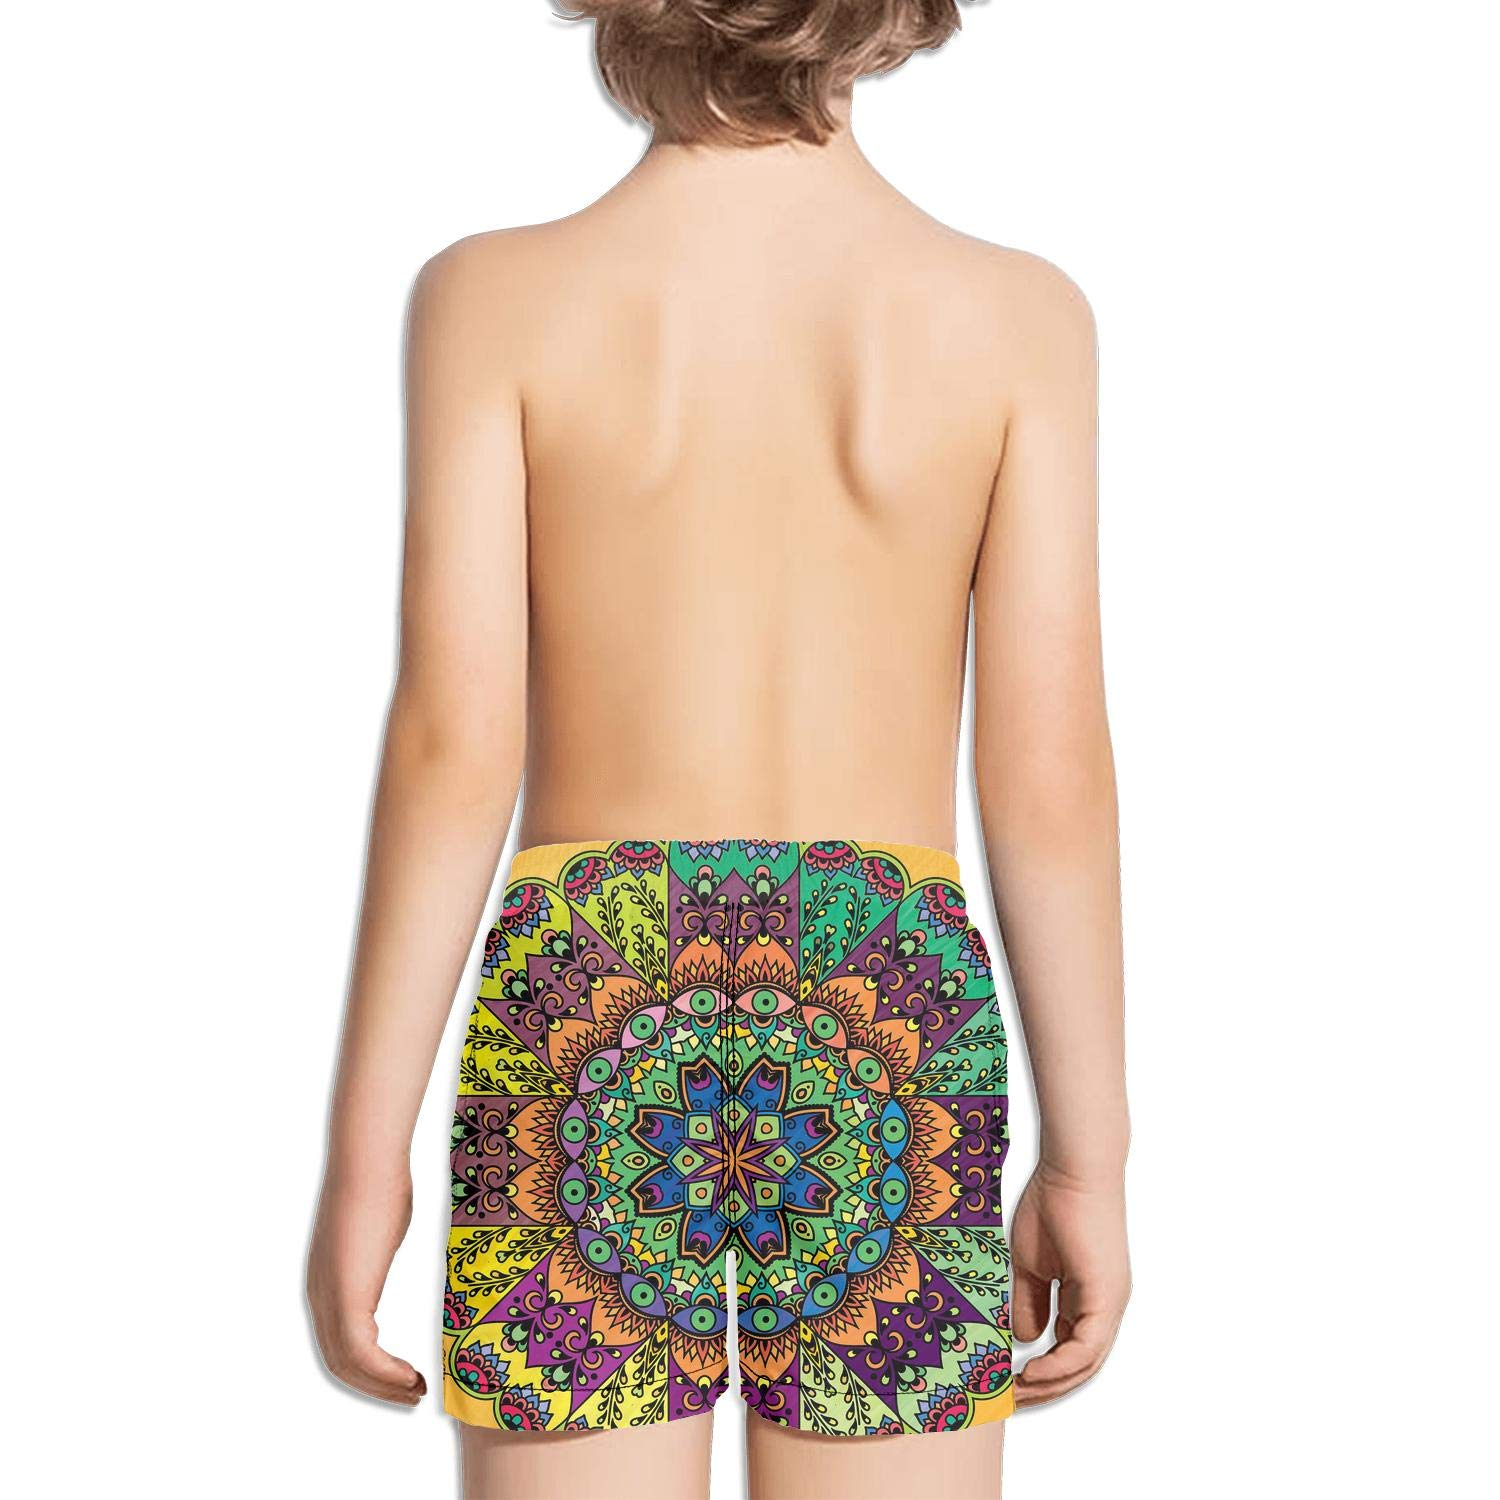 FullBo Beautiful Present Design Retro Mandala Little Boys Short Swim Trunks Quick Dry Beach Shorts